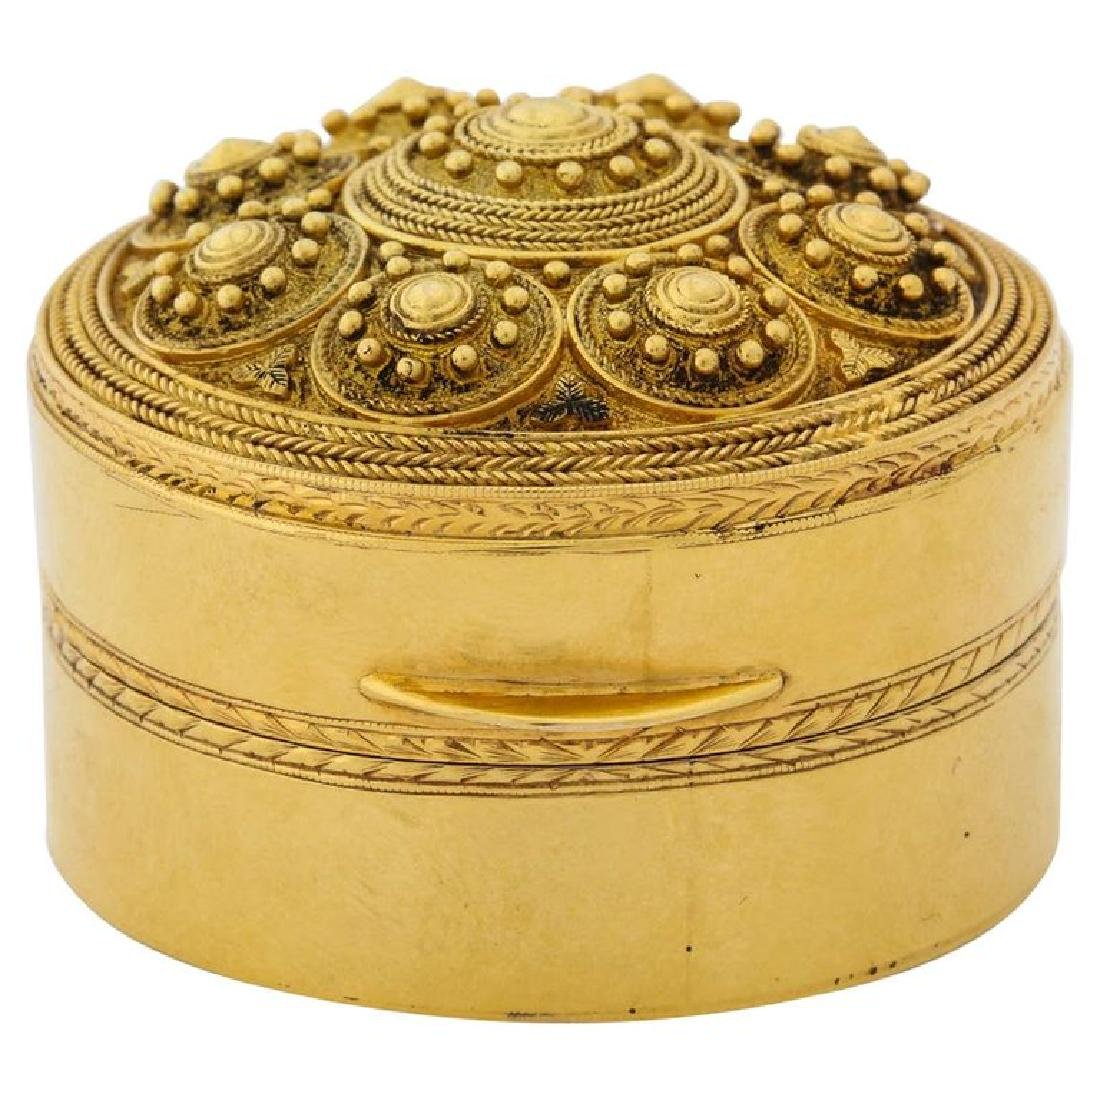 An Italian 14K Gold Round Box Bomboniere, in the